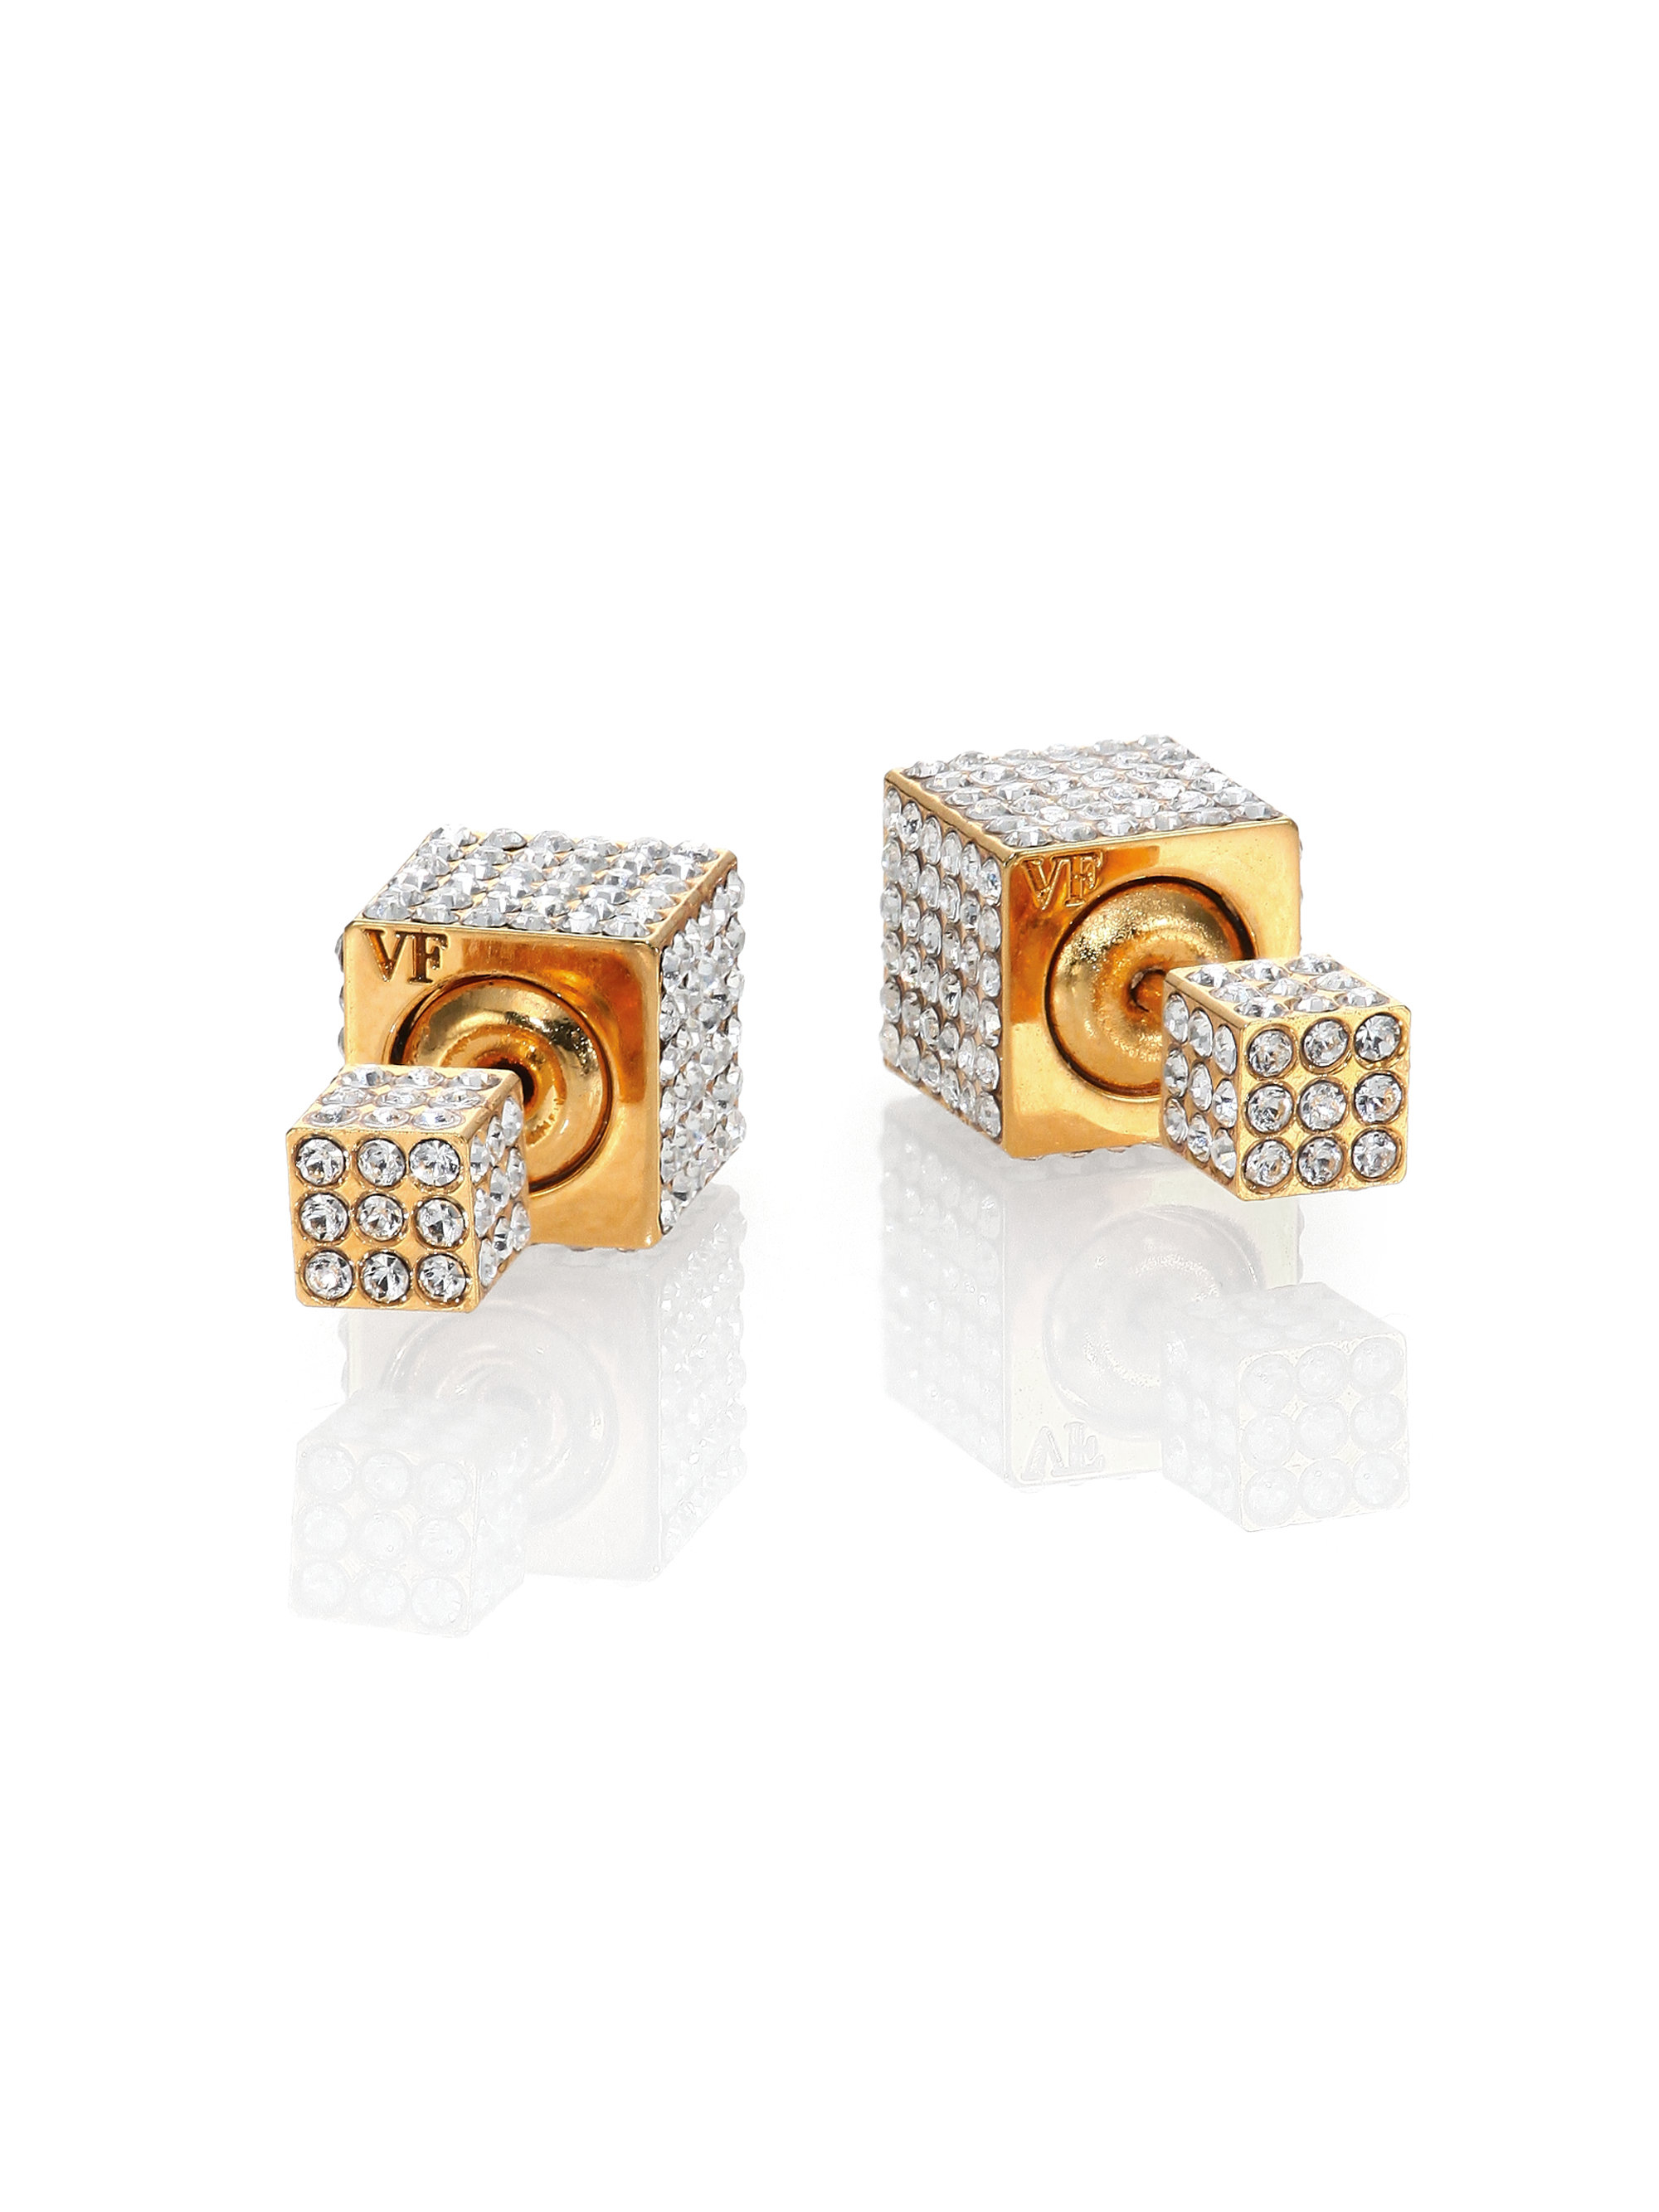 Vita Fede Double Cubo Crystal Double Sided Studded